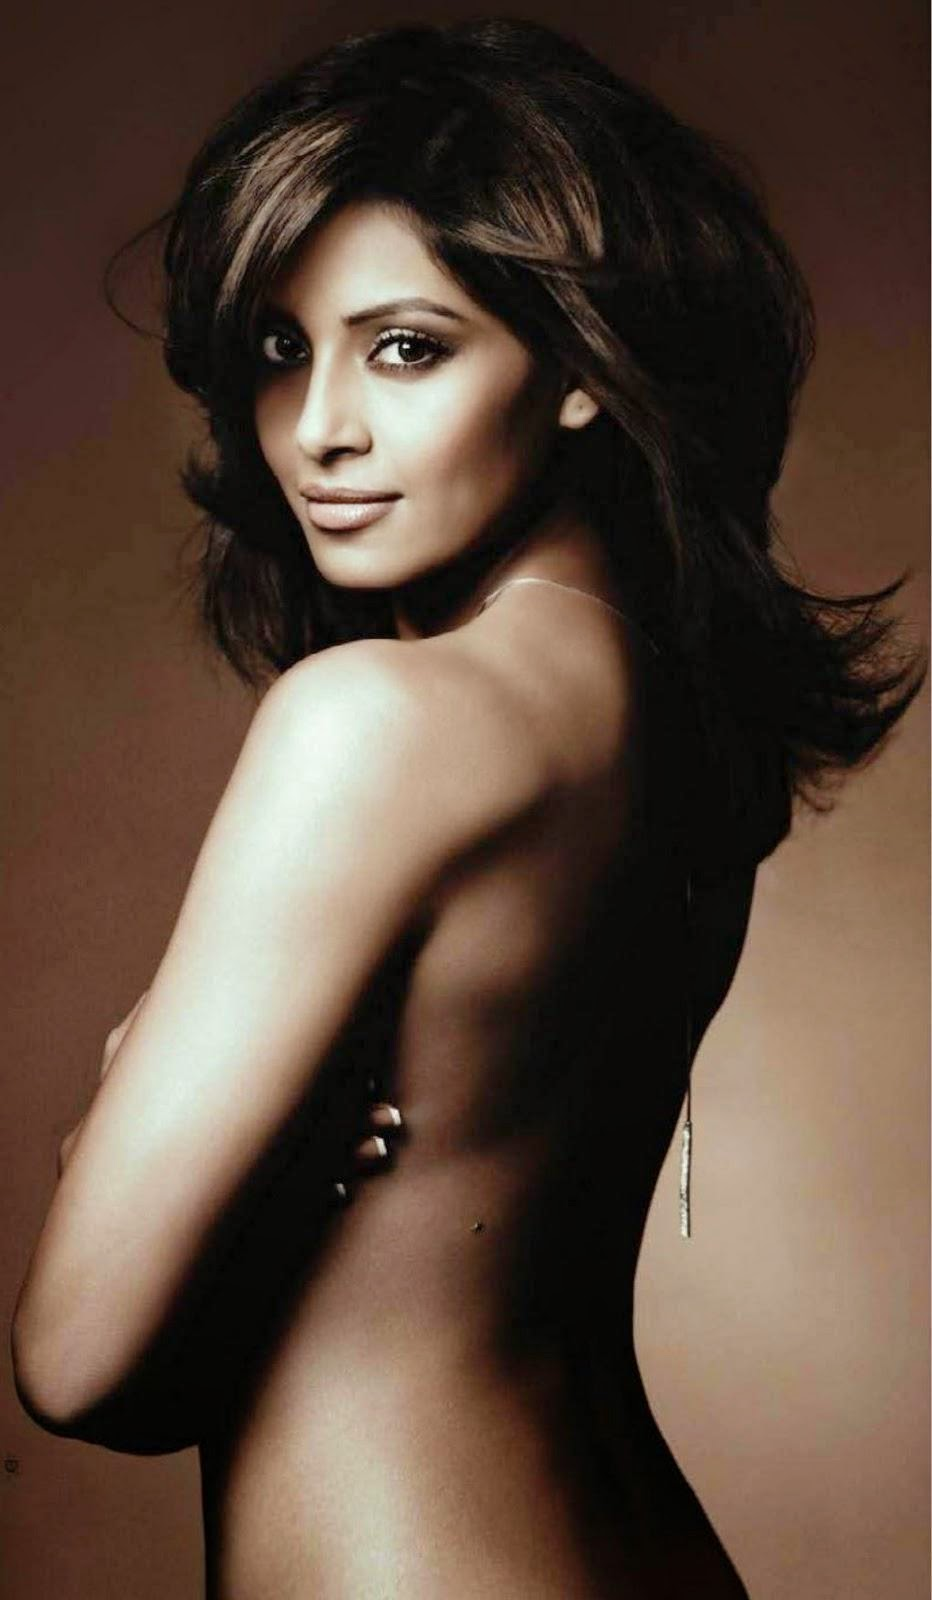 Bipasha Basu Topless Photo